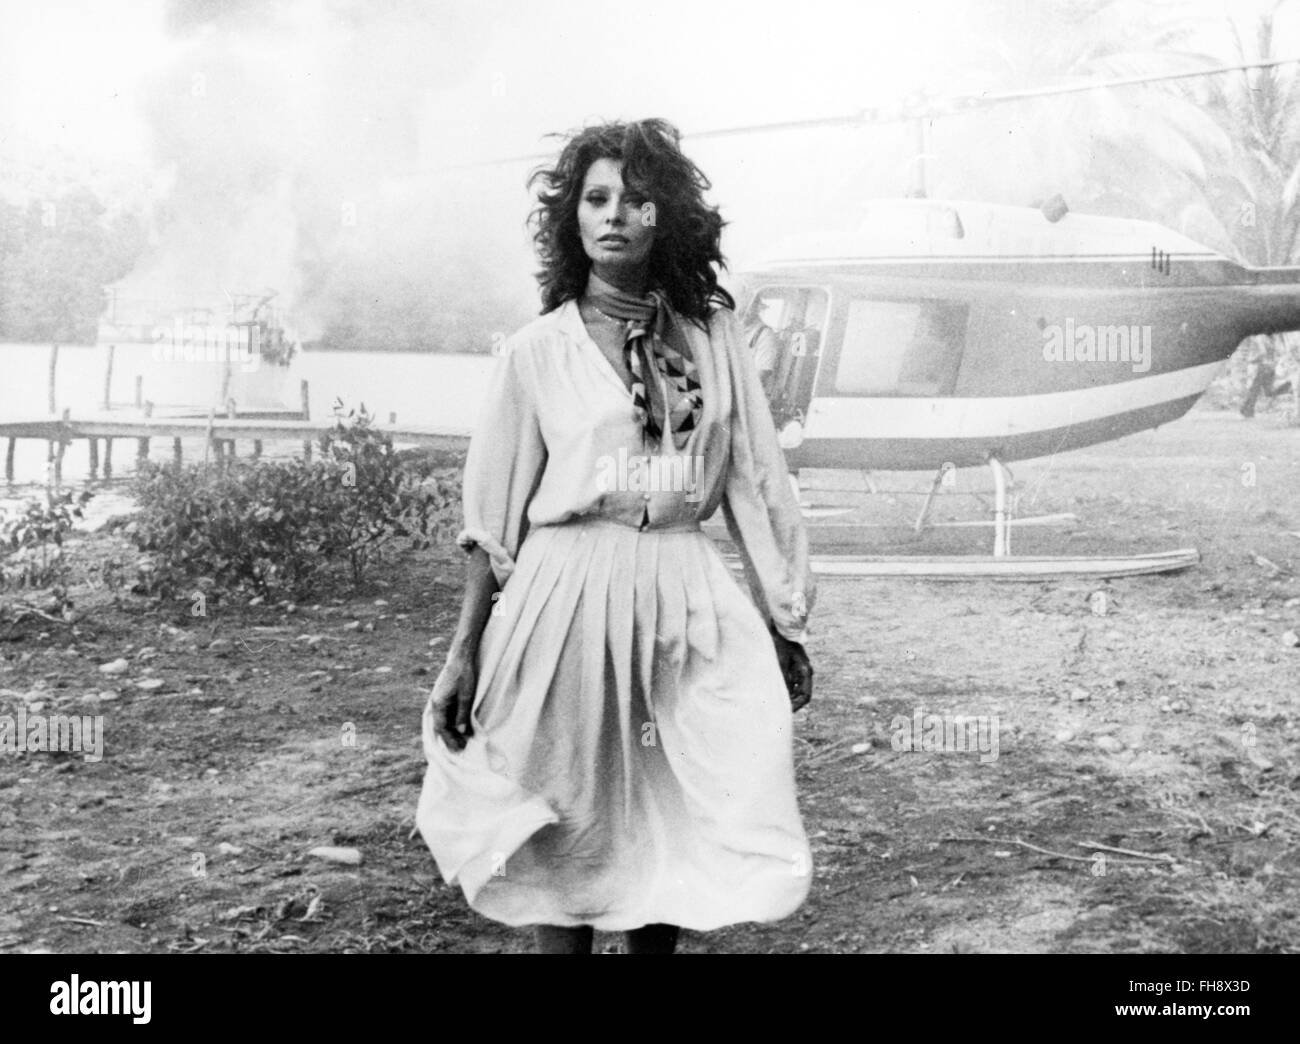 movie, 'Firepower', GBR 1979, director: Michael Winner, scene with: Sophia Loren, Third-Party-Permissions - Stock Image